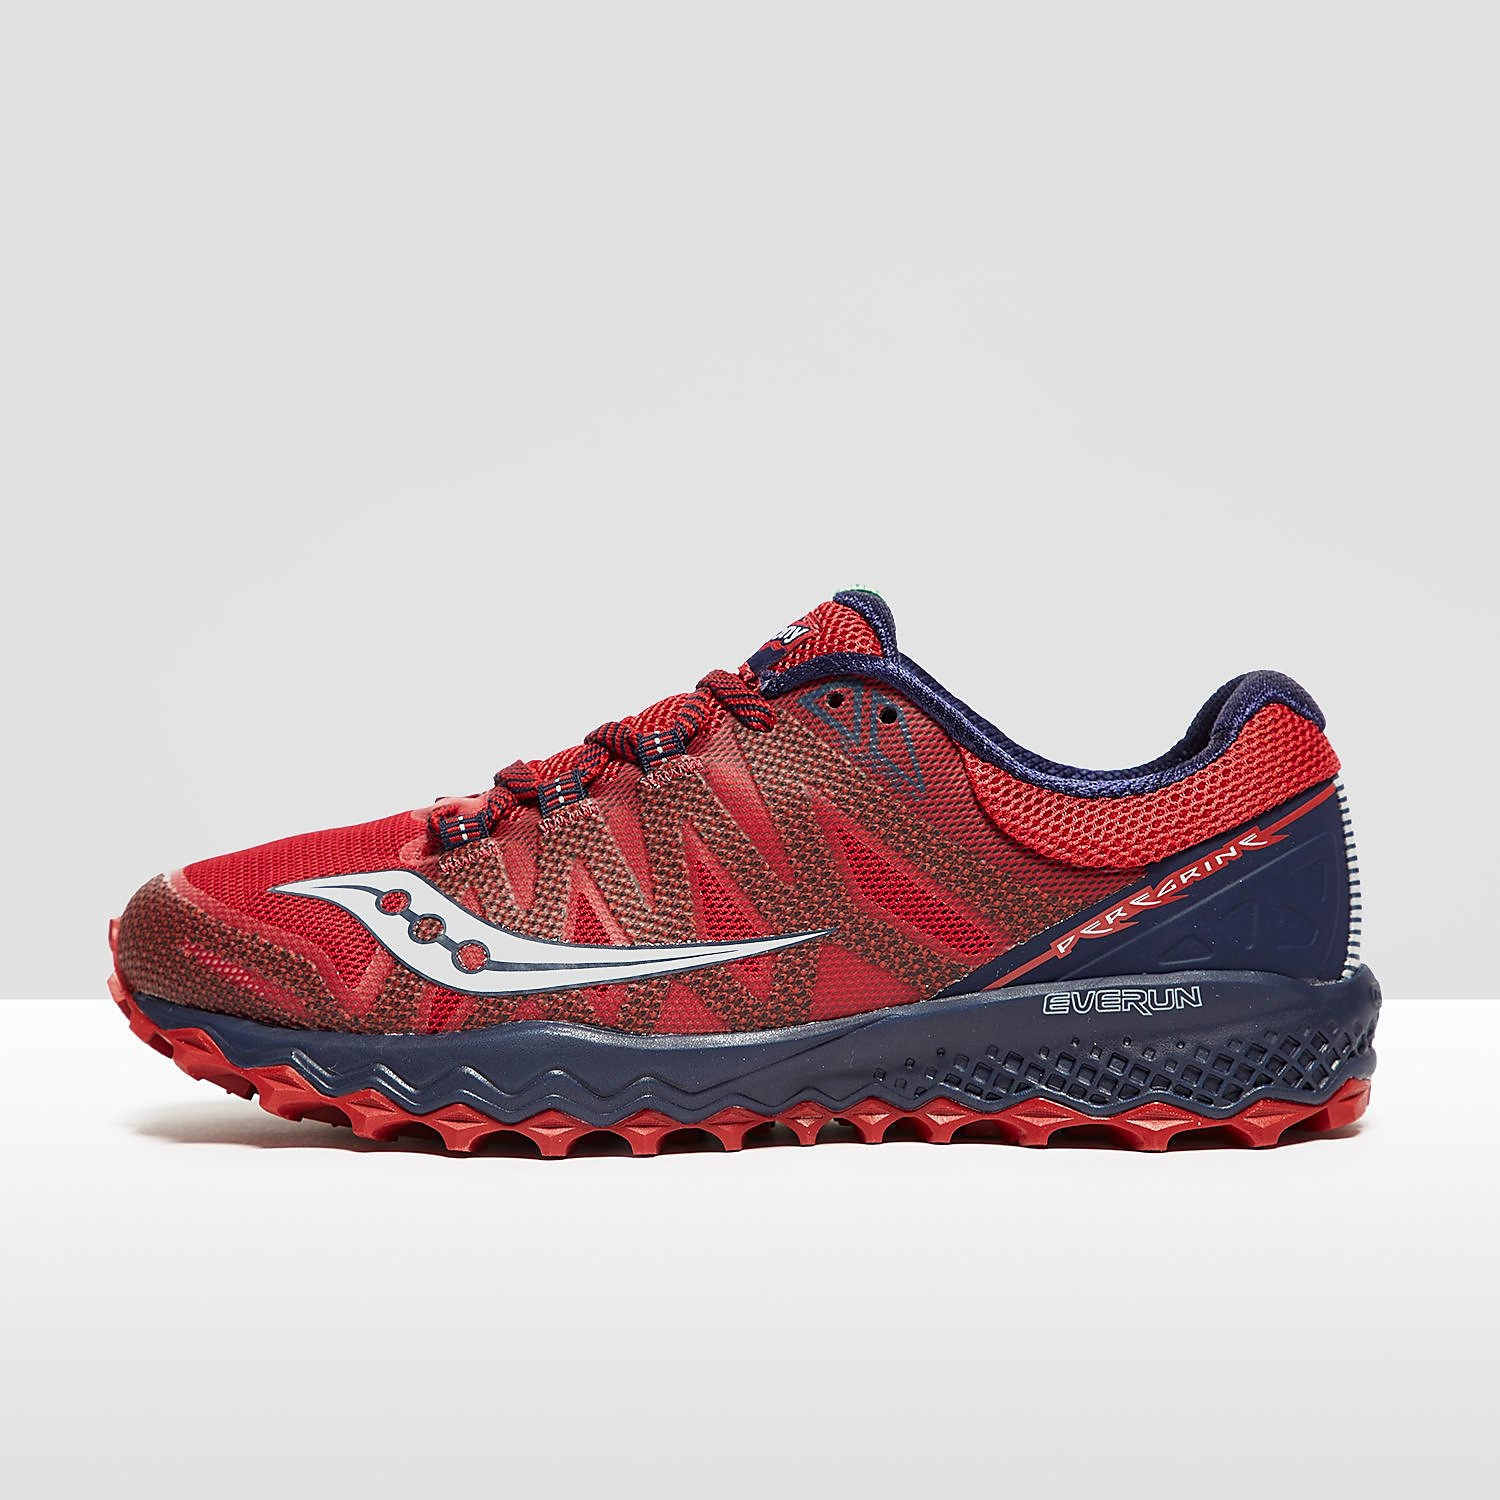 Saucony Peregrine 7 Men's Trail Running Shoes